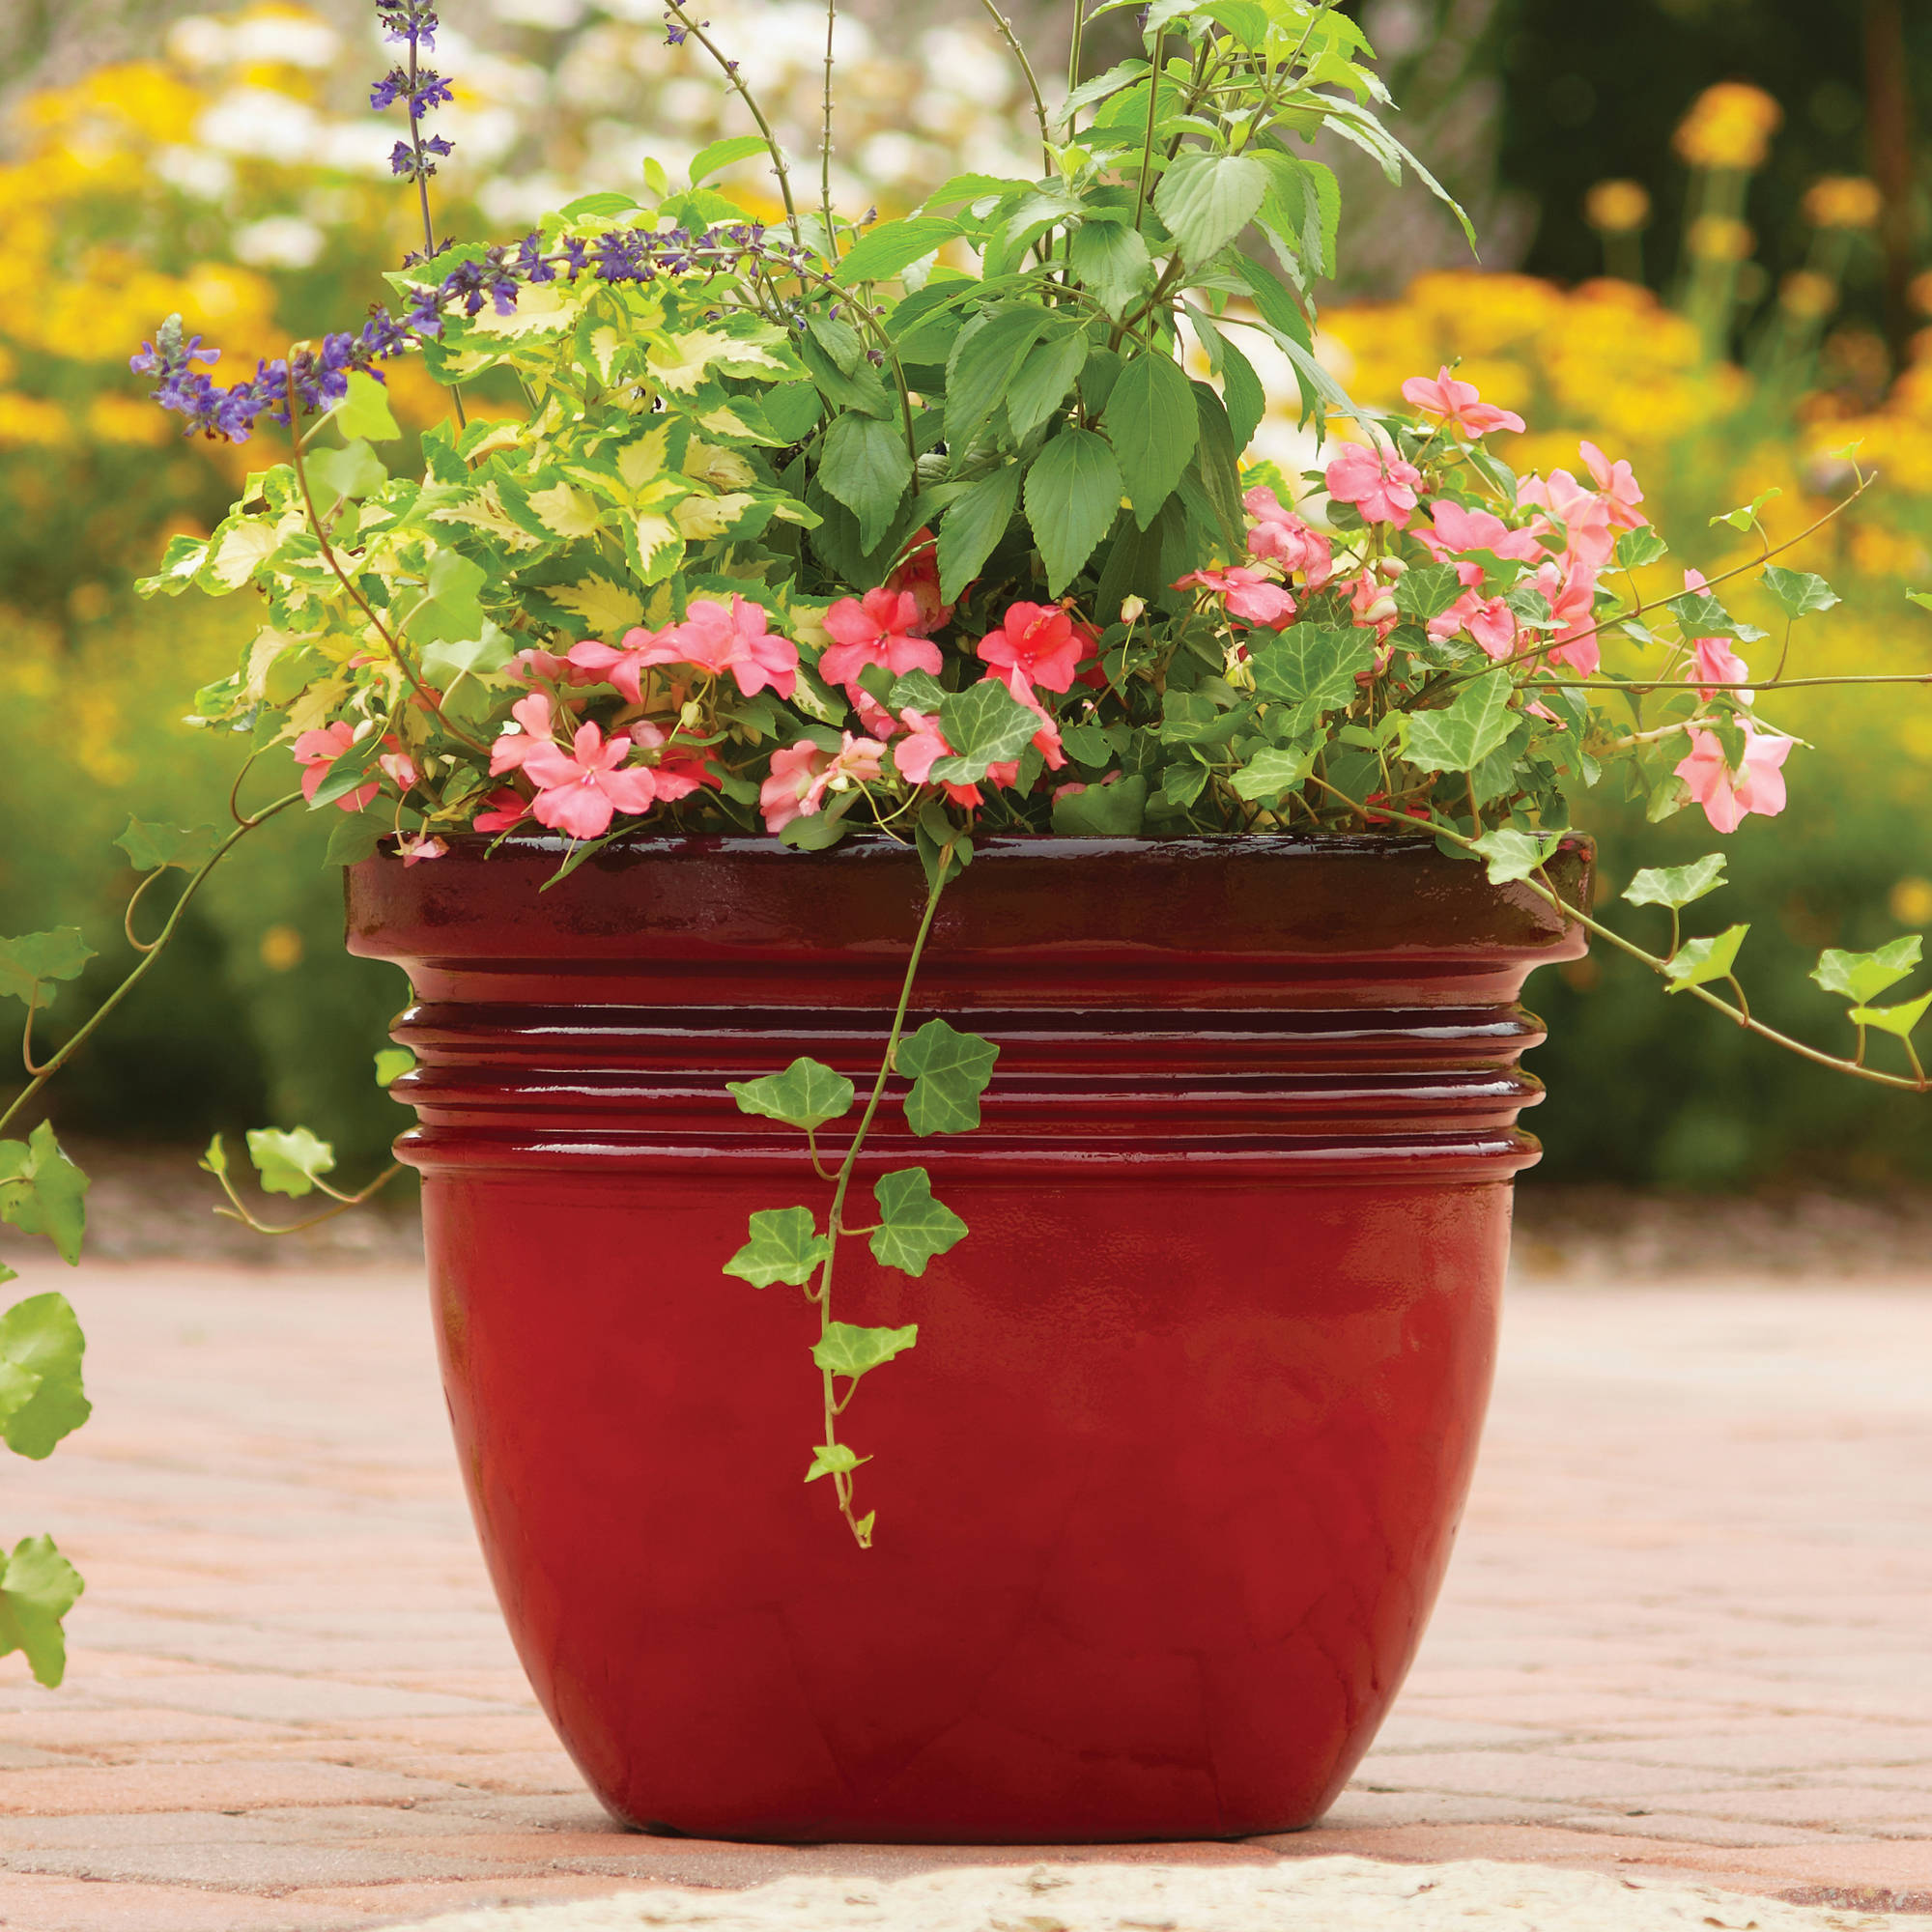 Unique Outdoor Flower Pots Better Homes And Gardens Bombay Decorative Outdoor Planter Red Sedona 16